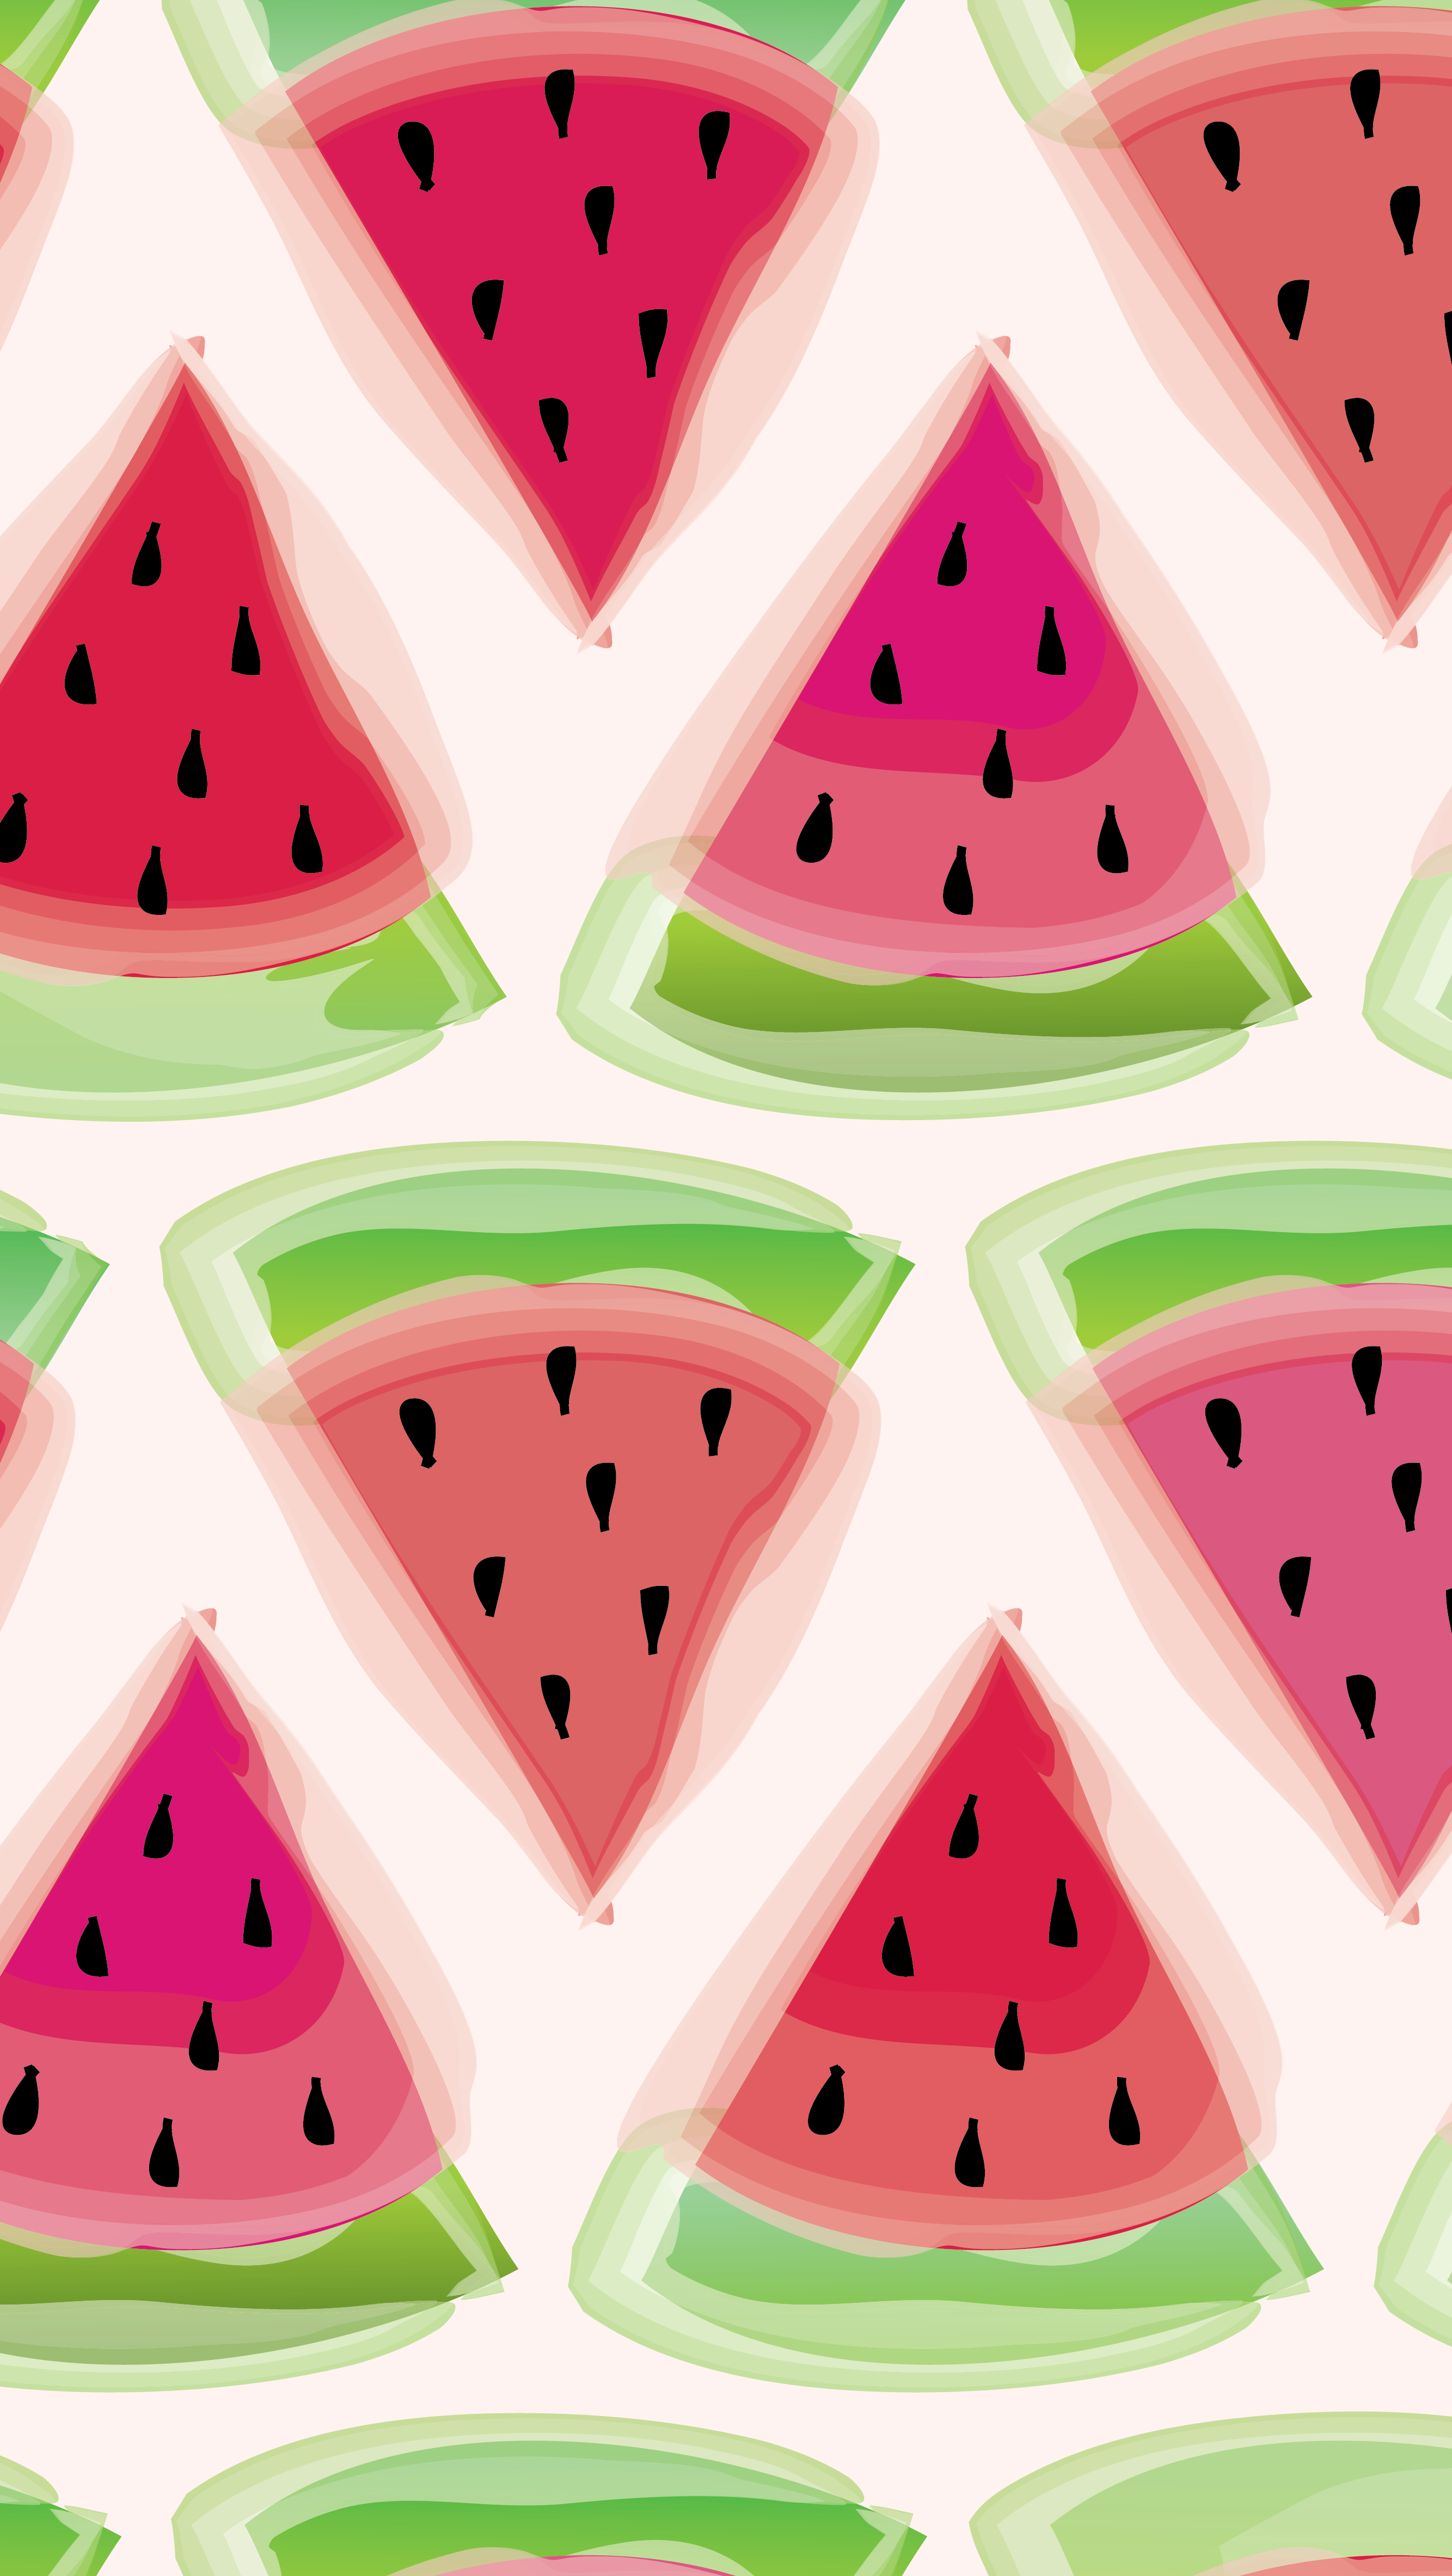 New Watermelon High Quality Wallpapers